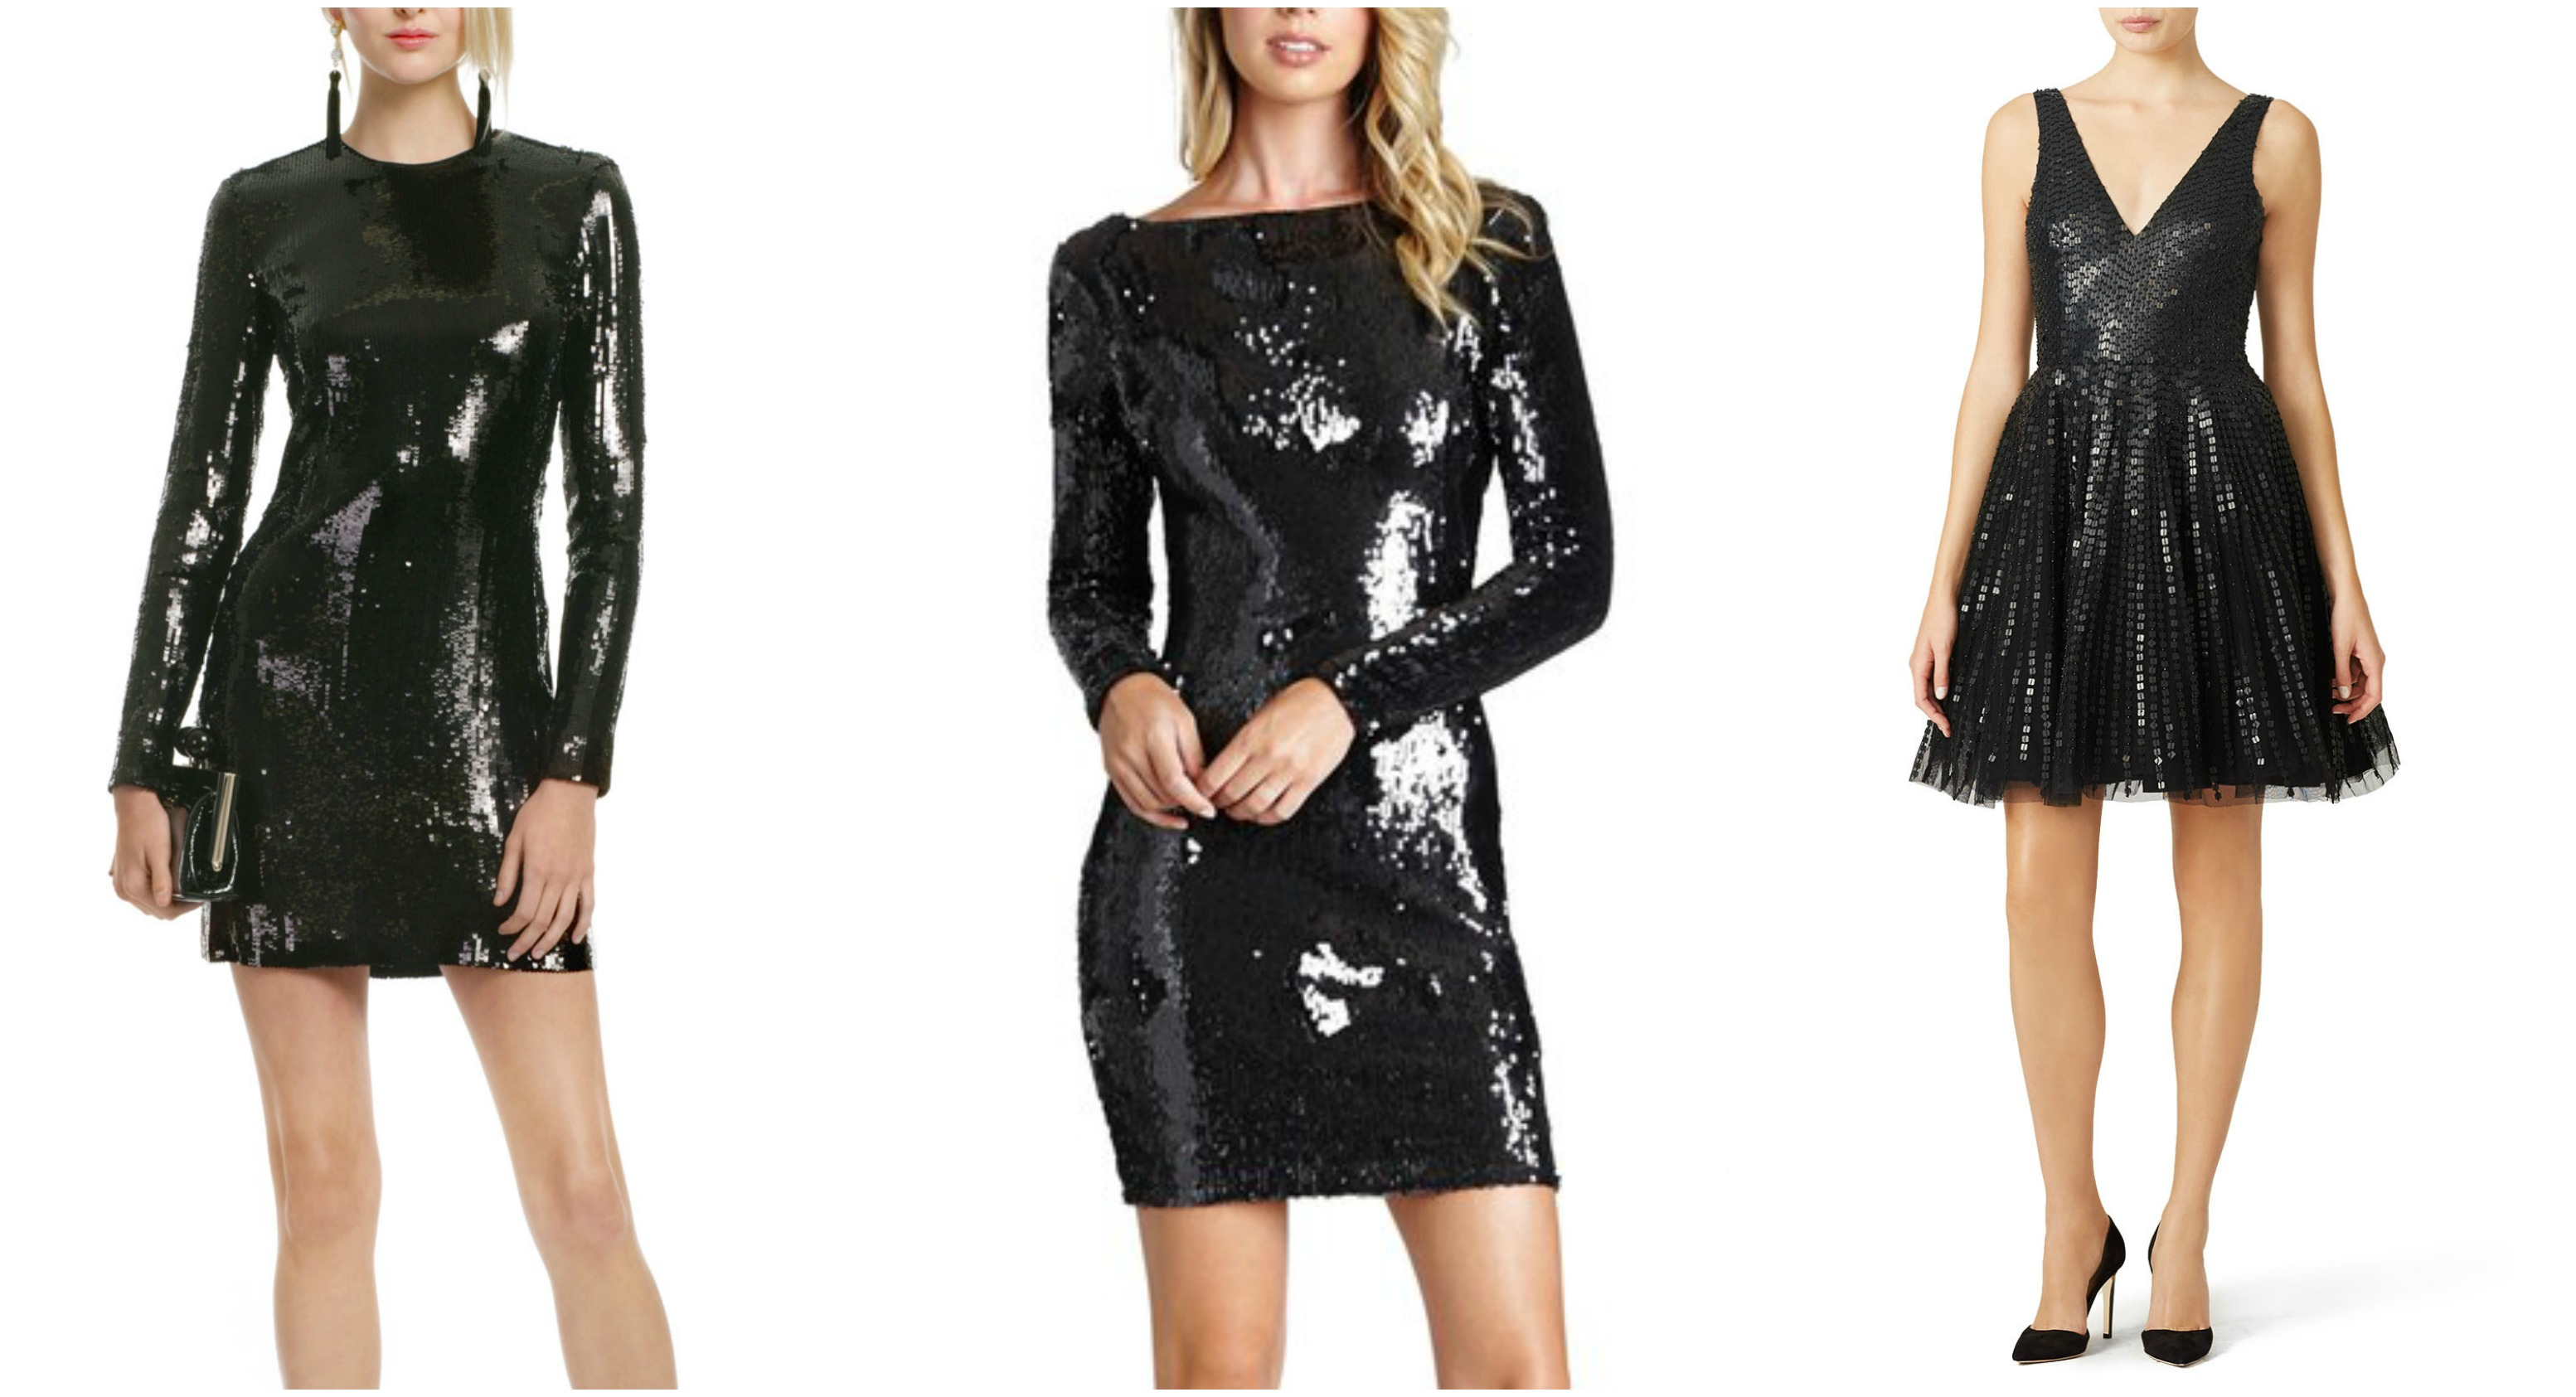 Black Sequin dresses